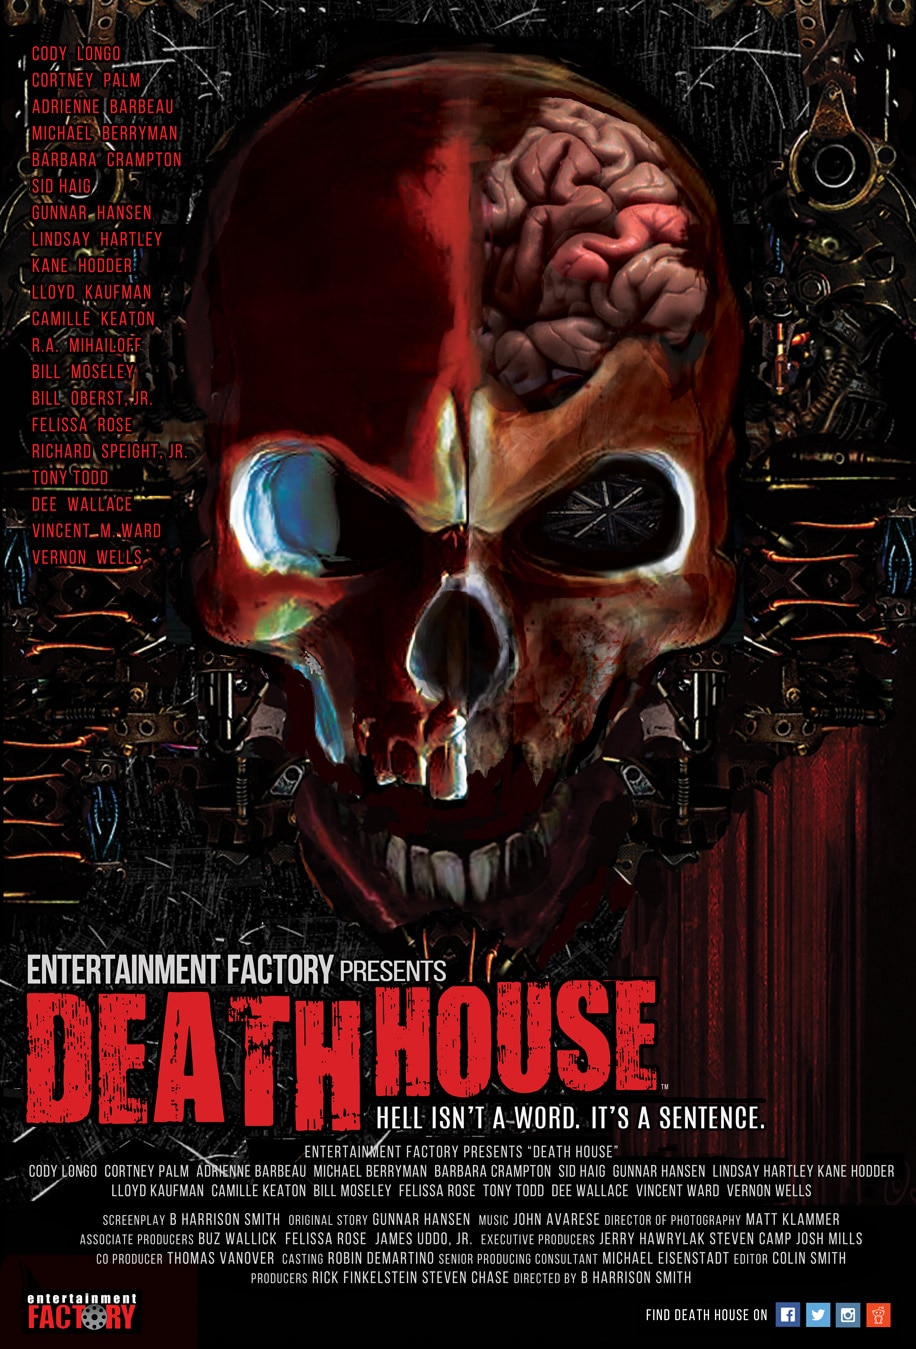 deathhouse finalposter - Full Death House Trailer Brings the Carnage; Exclusive New Promo Images!